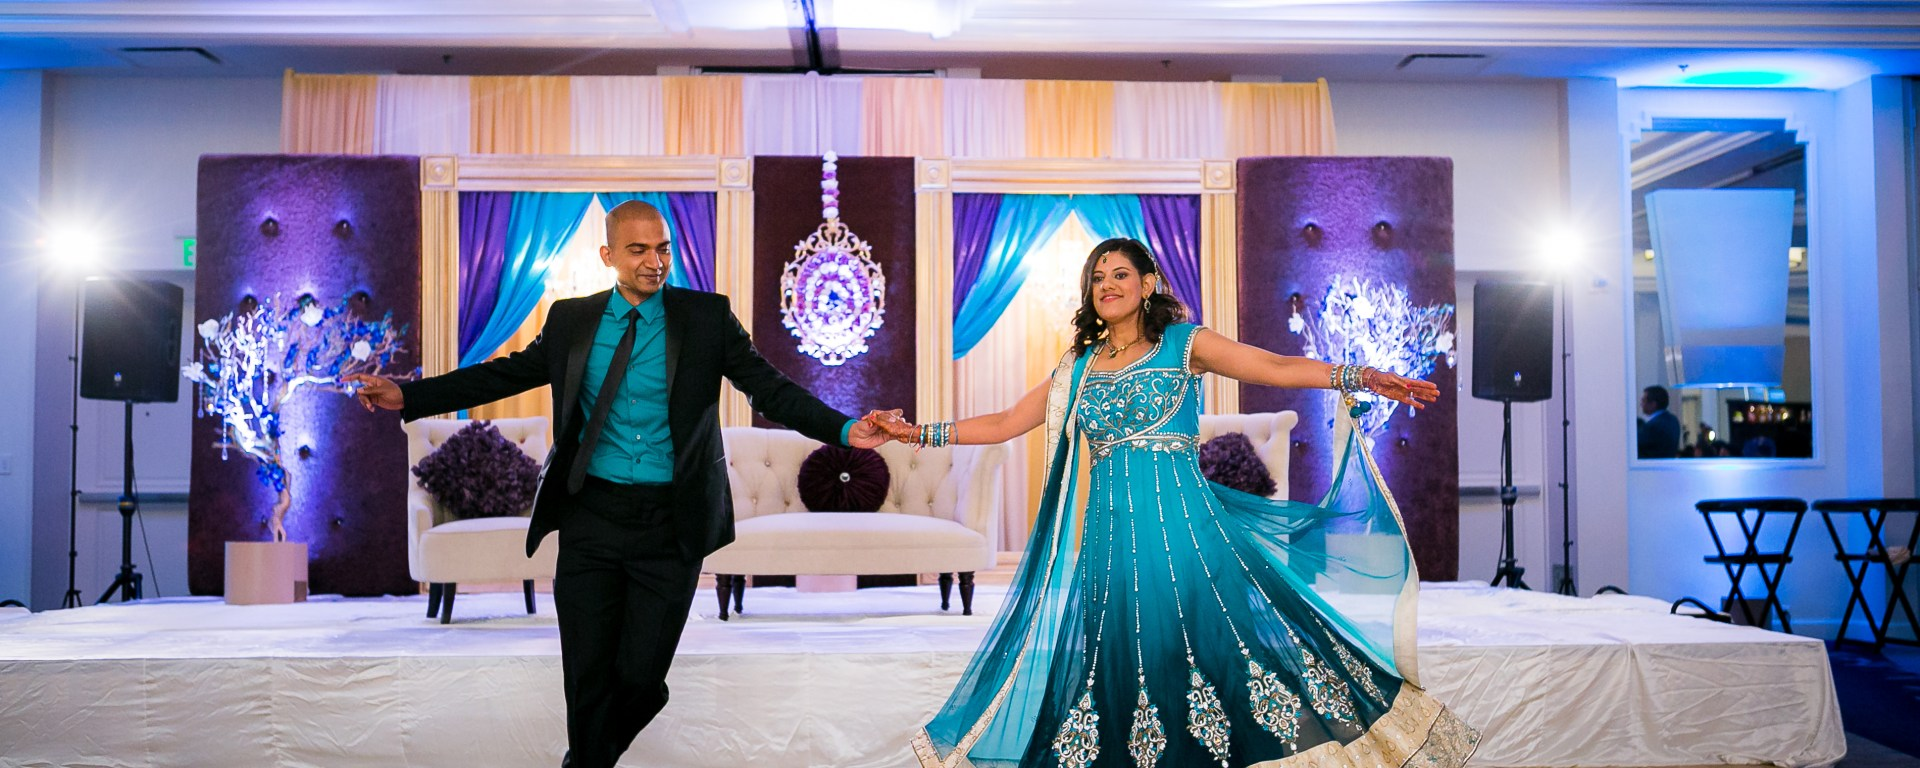 Indian Wedding Decor Turquoise And Purple Indian Wedding Venues